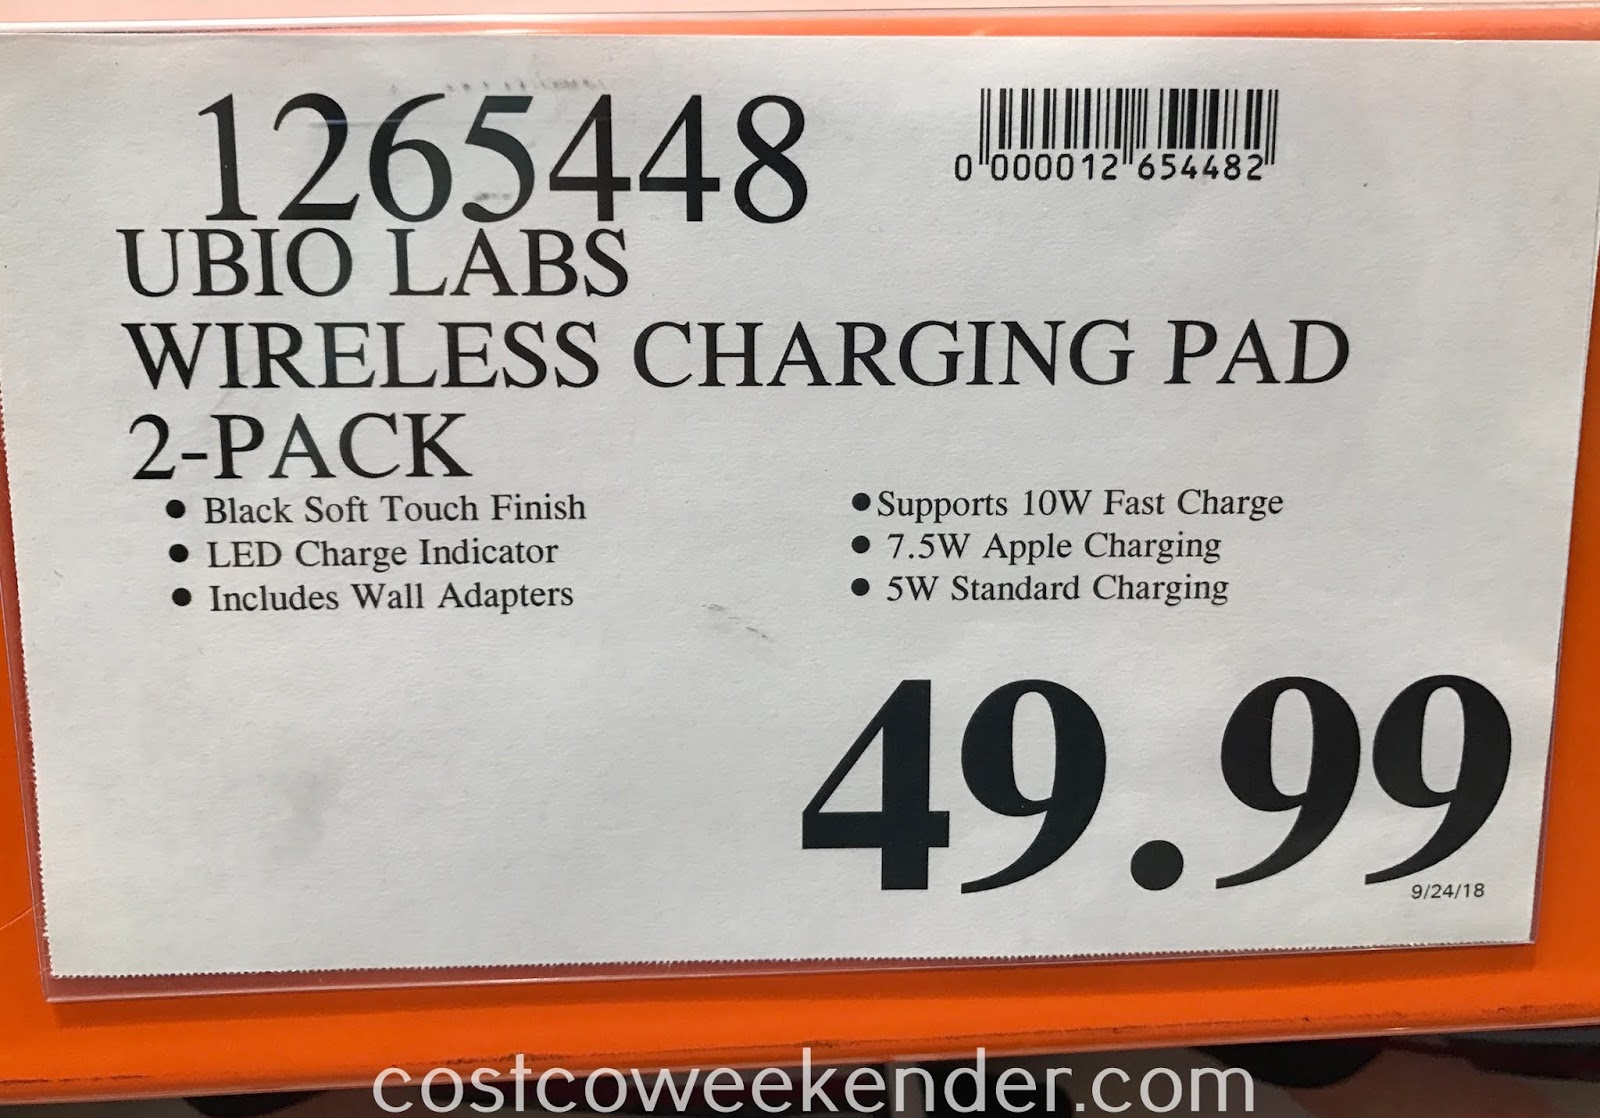 Deal for a 2 pack of Ubio Labs Wireless Charging Pad s at Costco